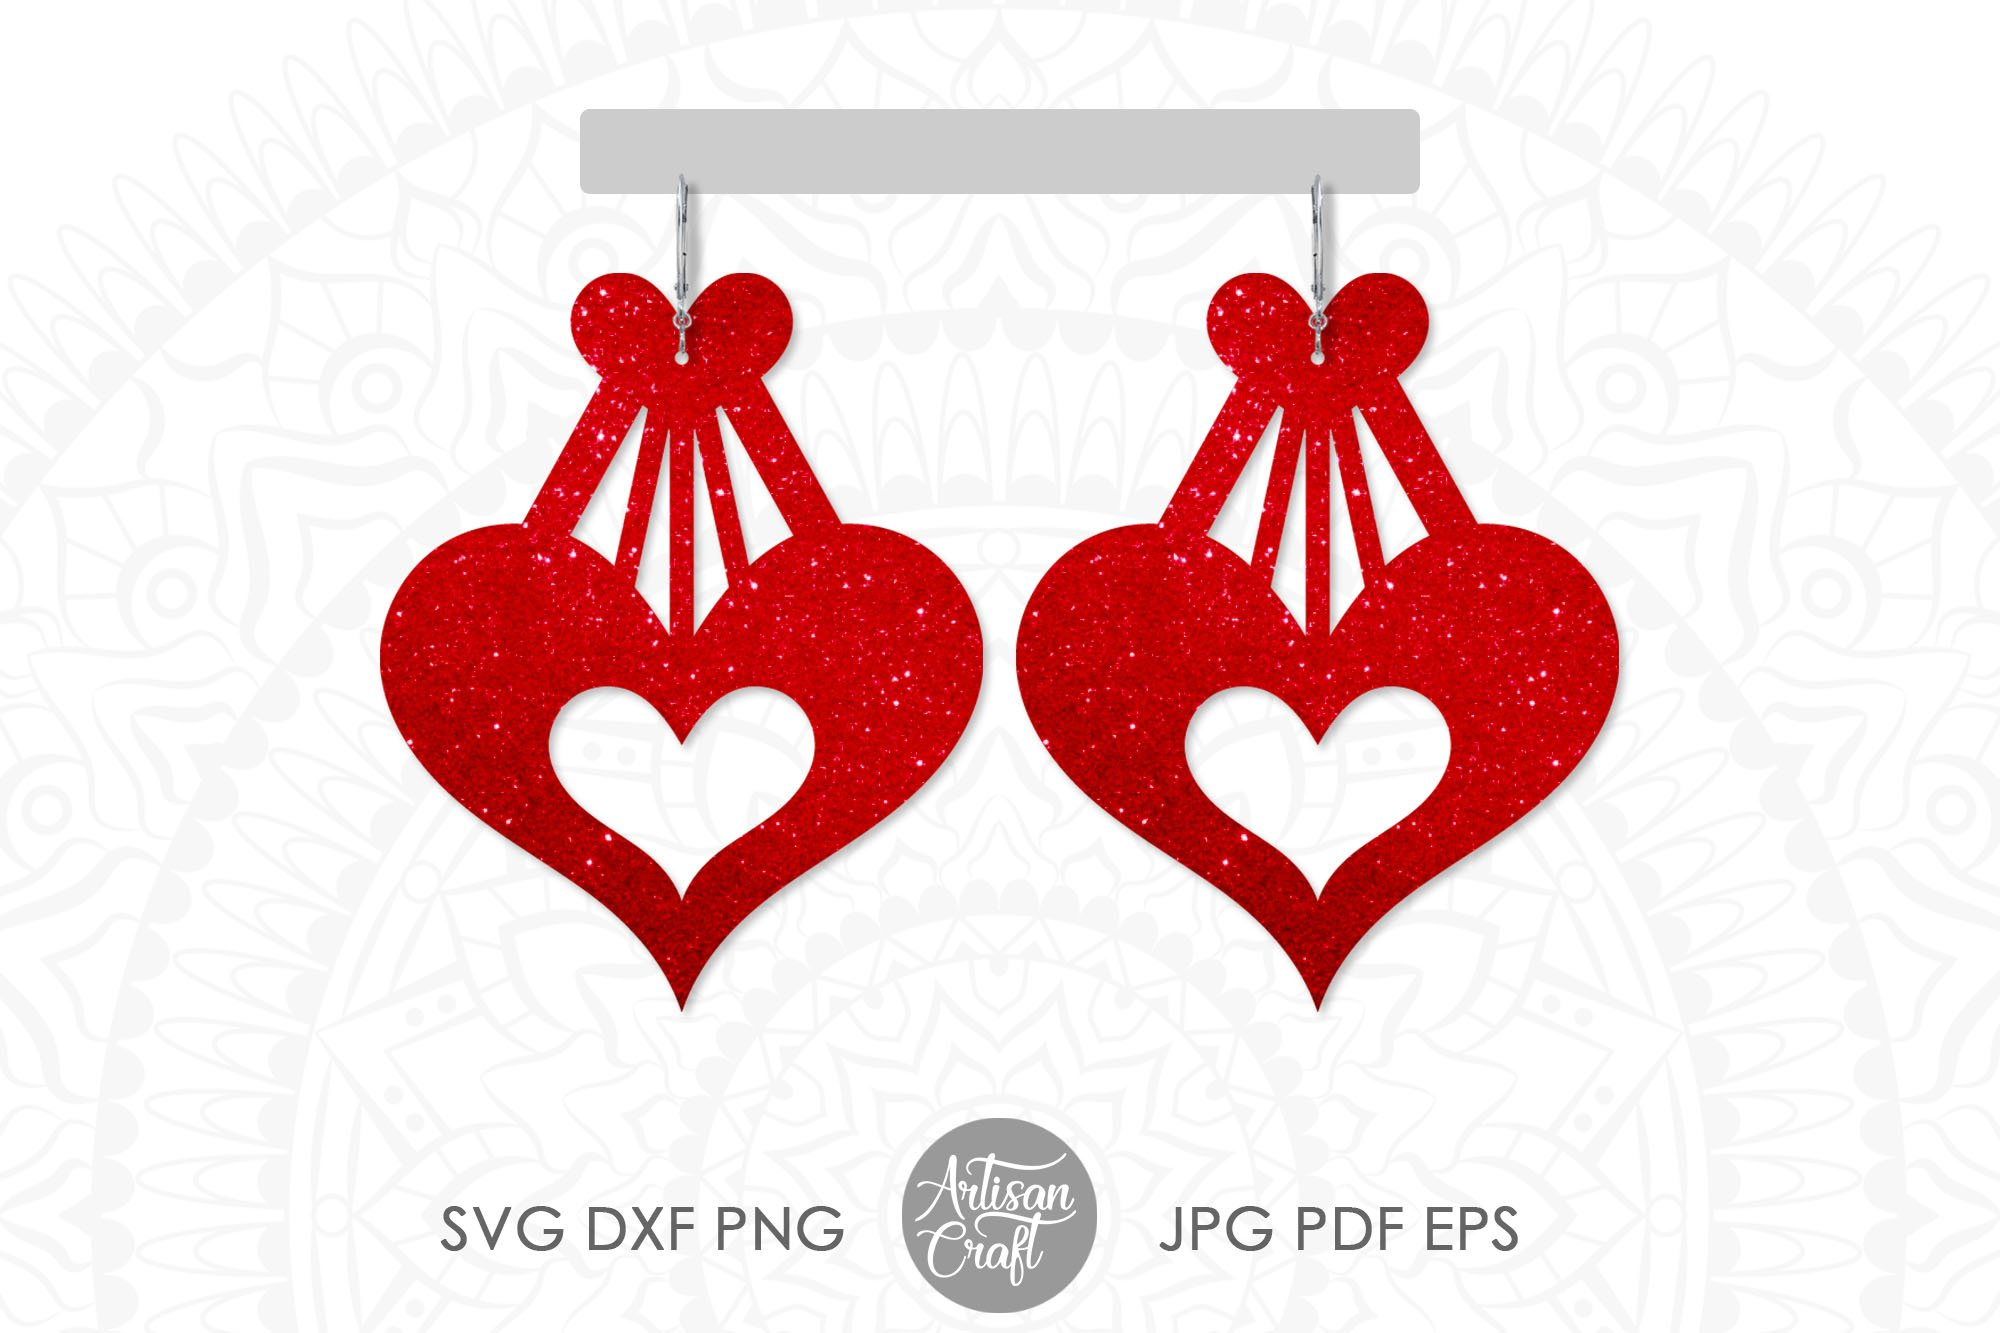 Heart earrings, SVG cutting files, faux leather earrings example image 1